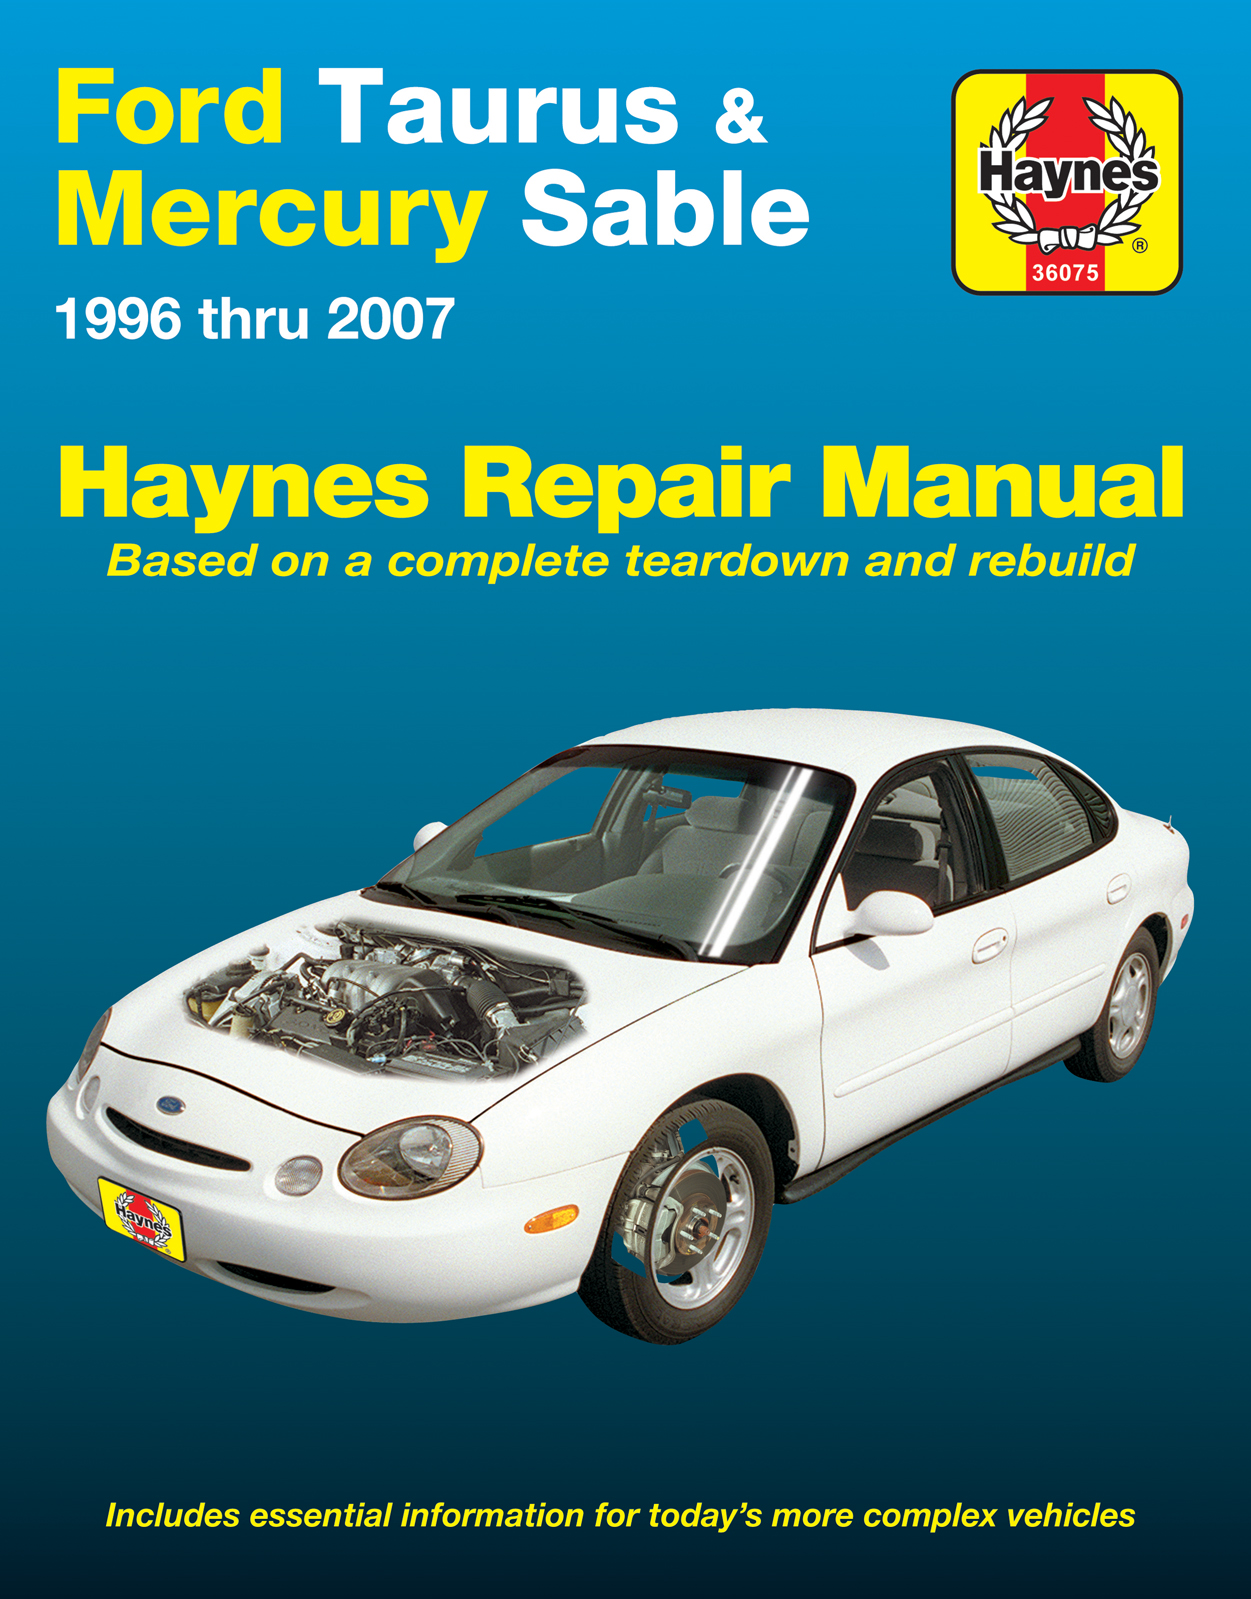 ford taurus repair manual download